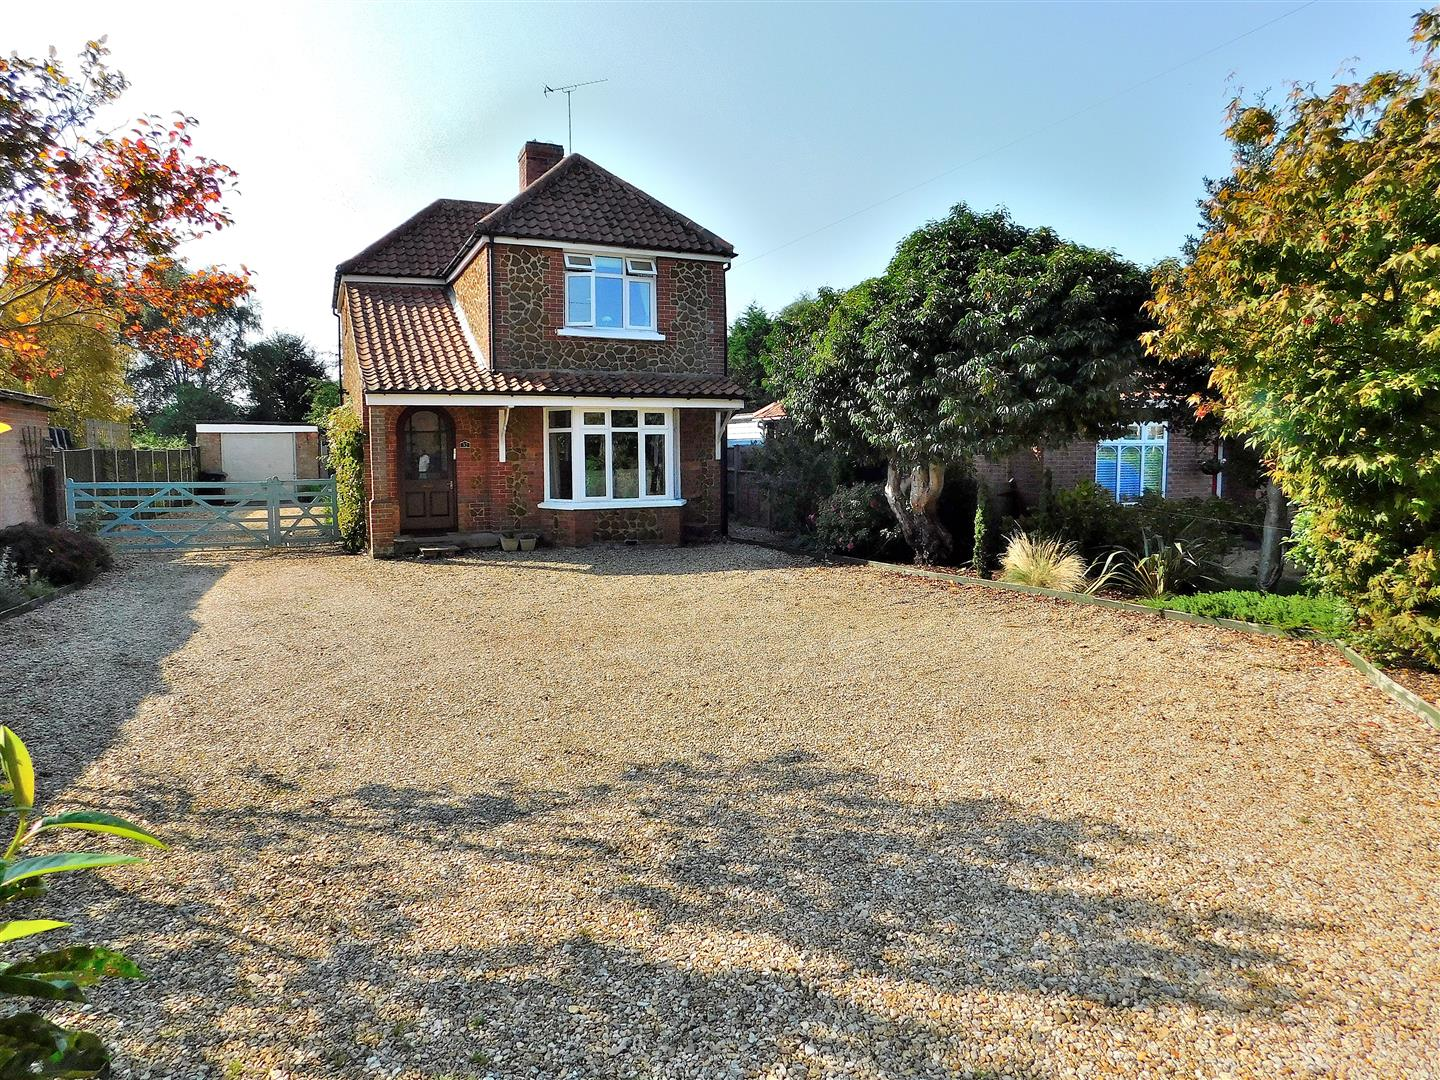 4 bed detached house for sale in King's Lynn, PE31 6HS - Property Image 1